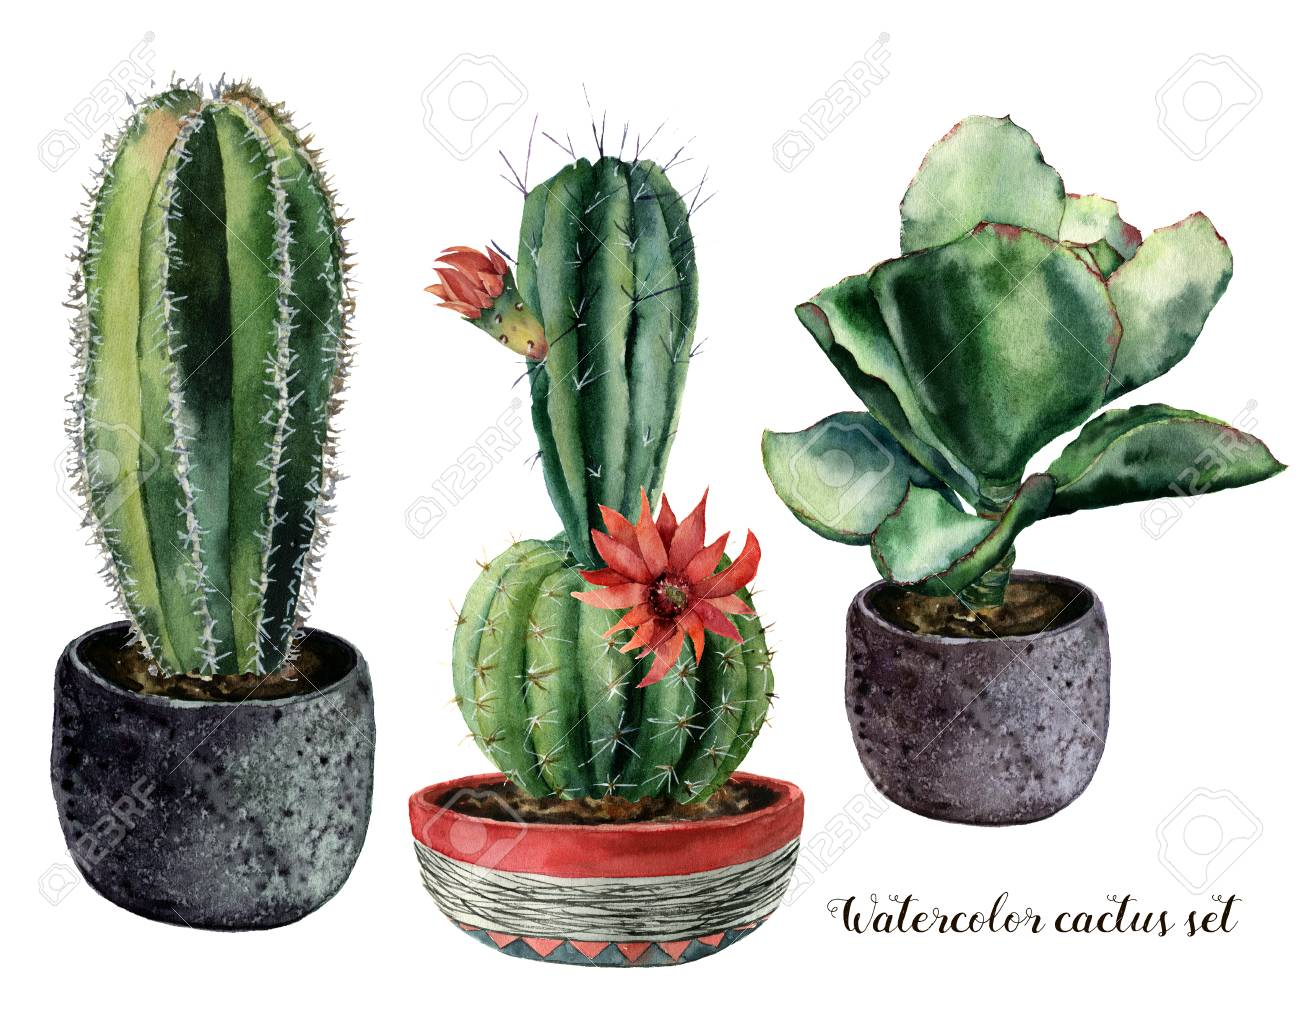 Watercolor set with cactus and flowers in a pot composition. Hand painted cereus and echeveria with red flower isolated on white background. Illustration for design, print, fabric or background. - 99287442